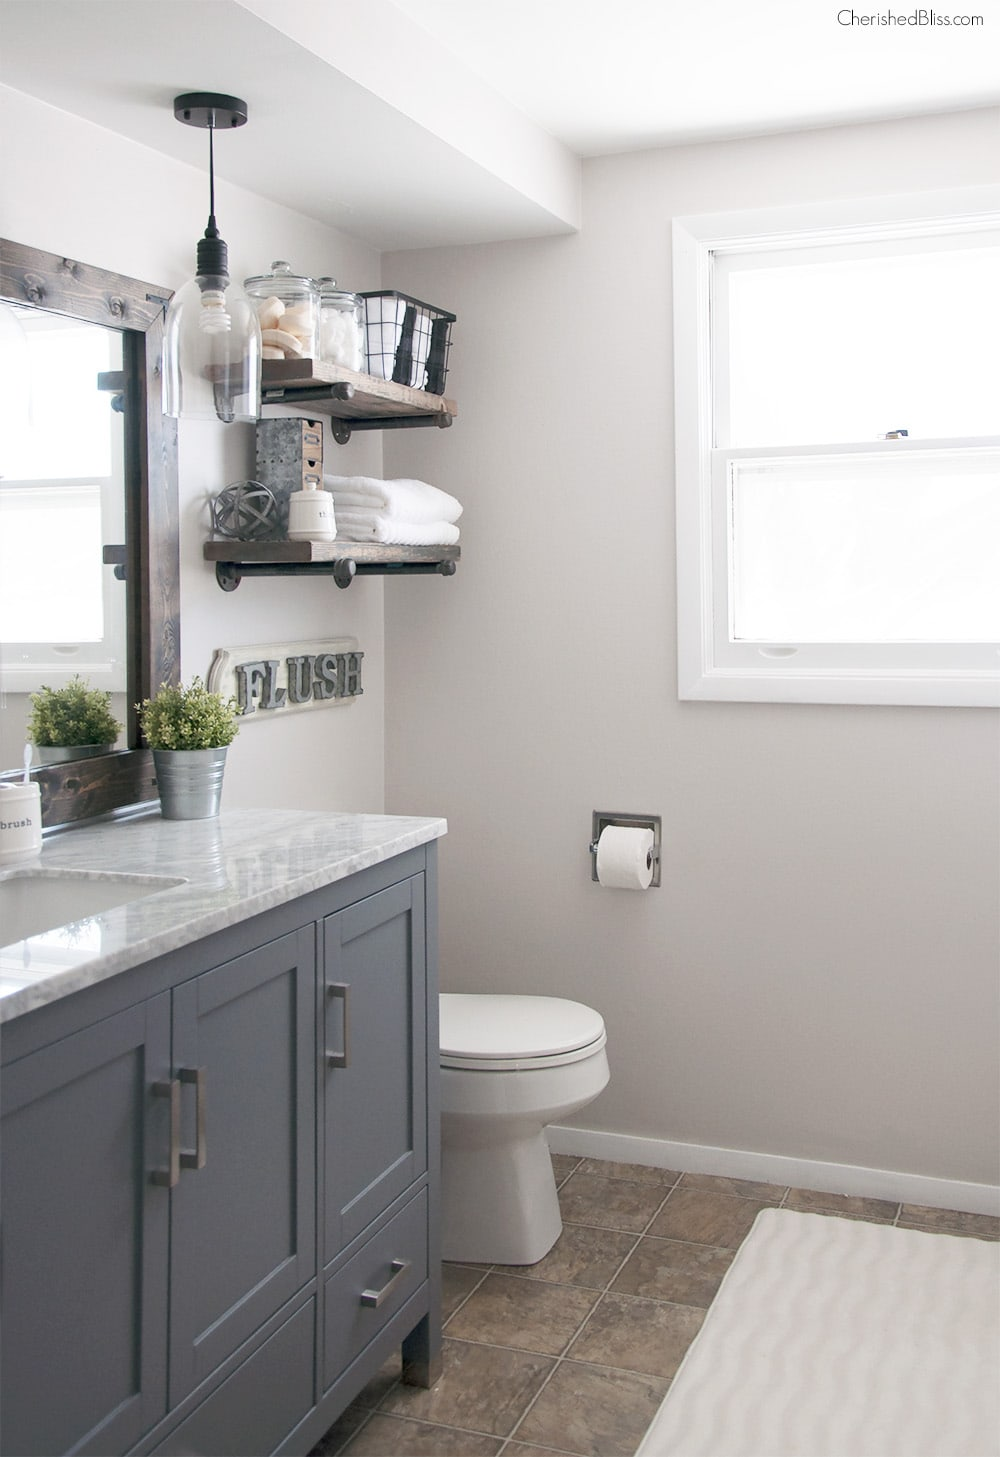 Budget Bathroom Updates: 5 Tips To Affordable Bathroom